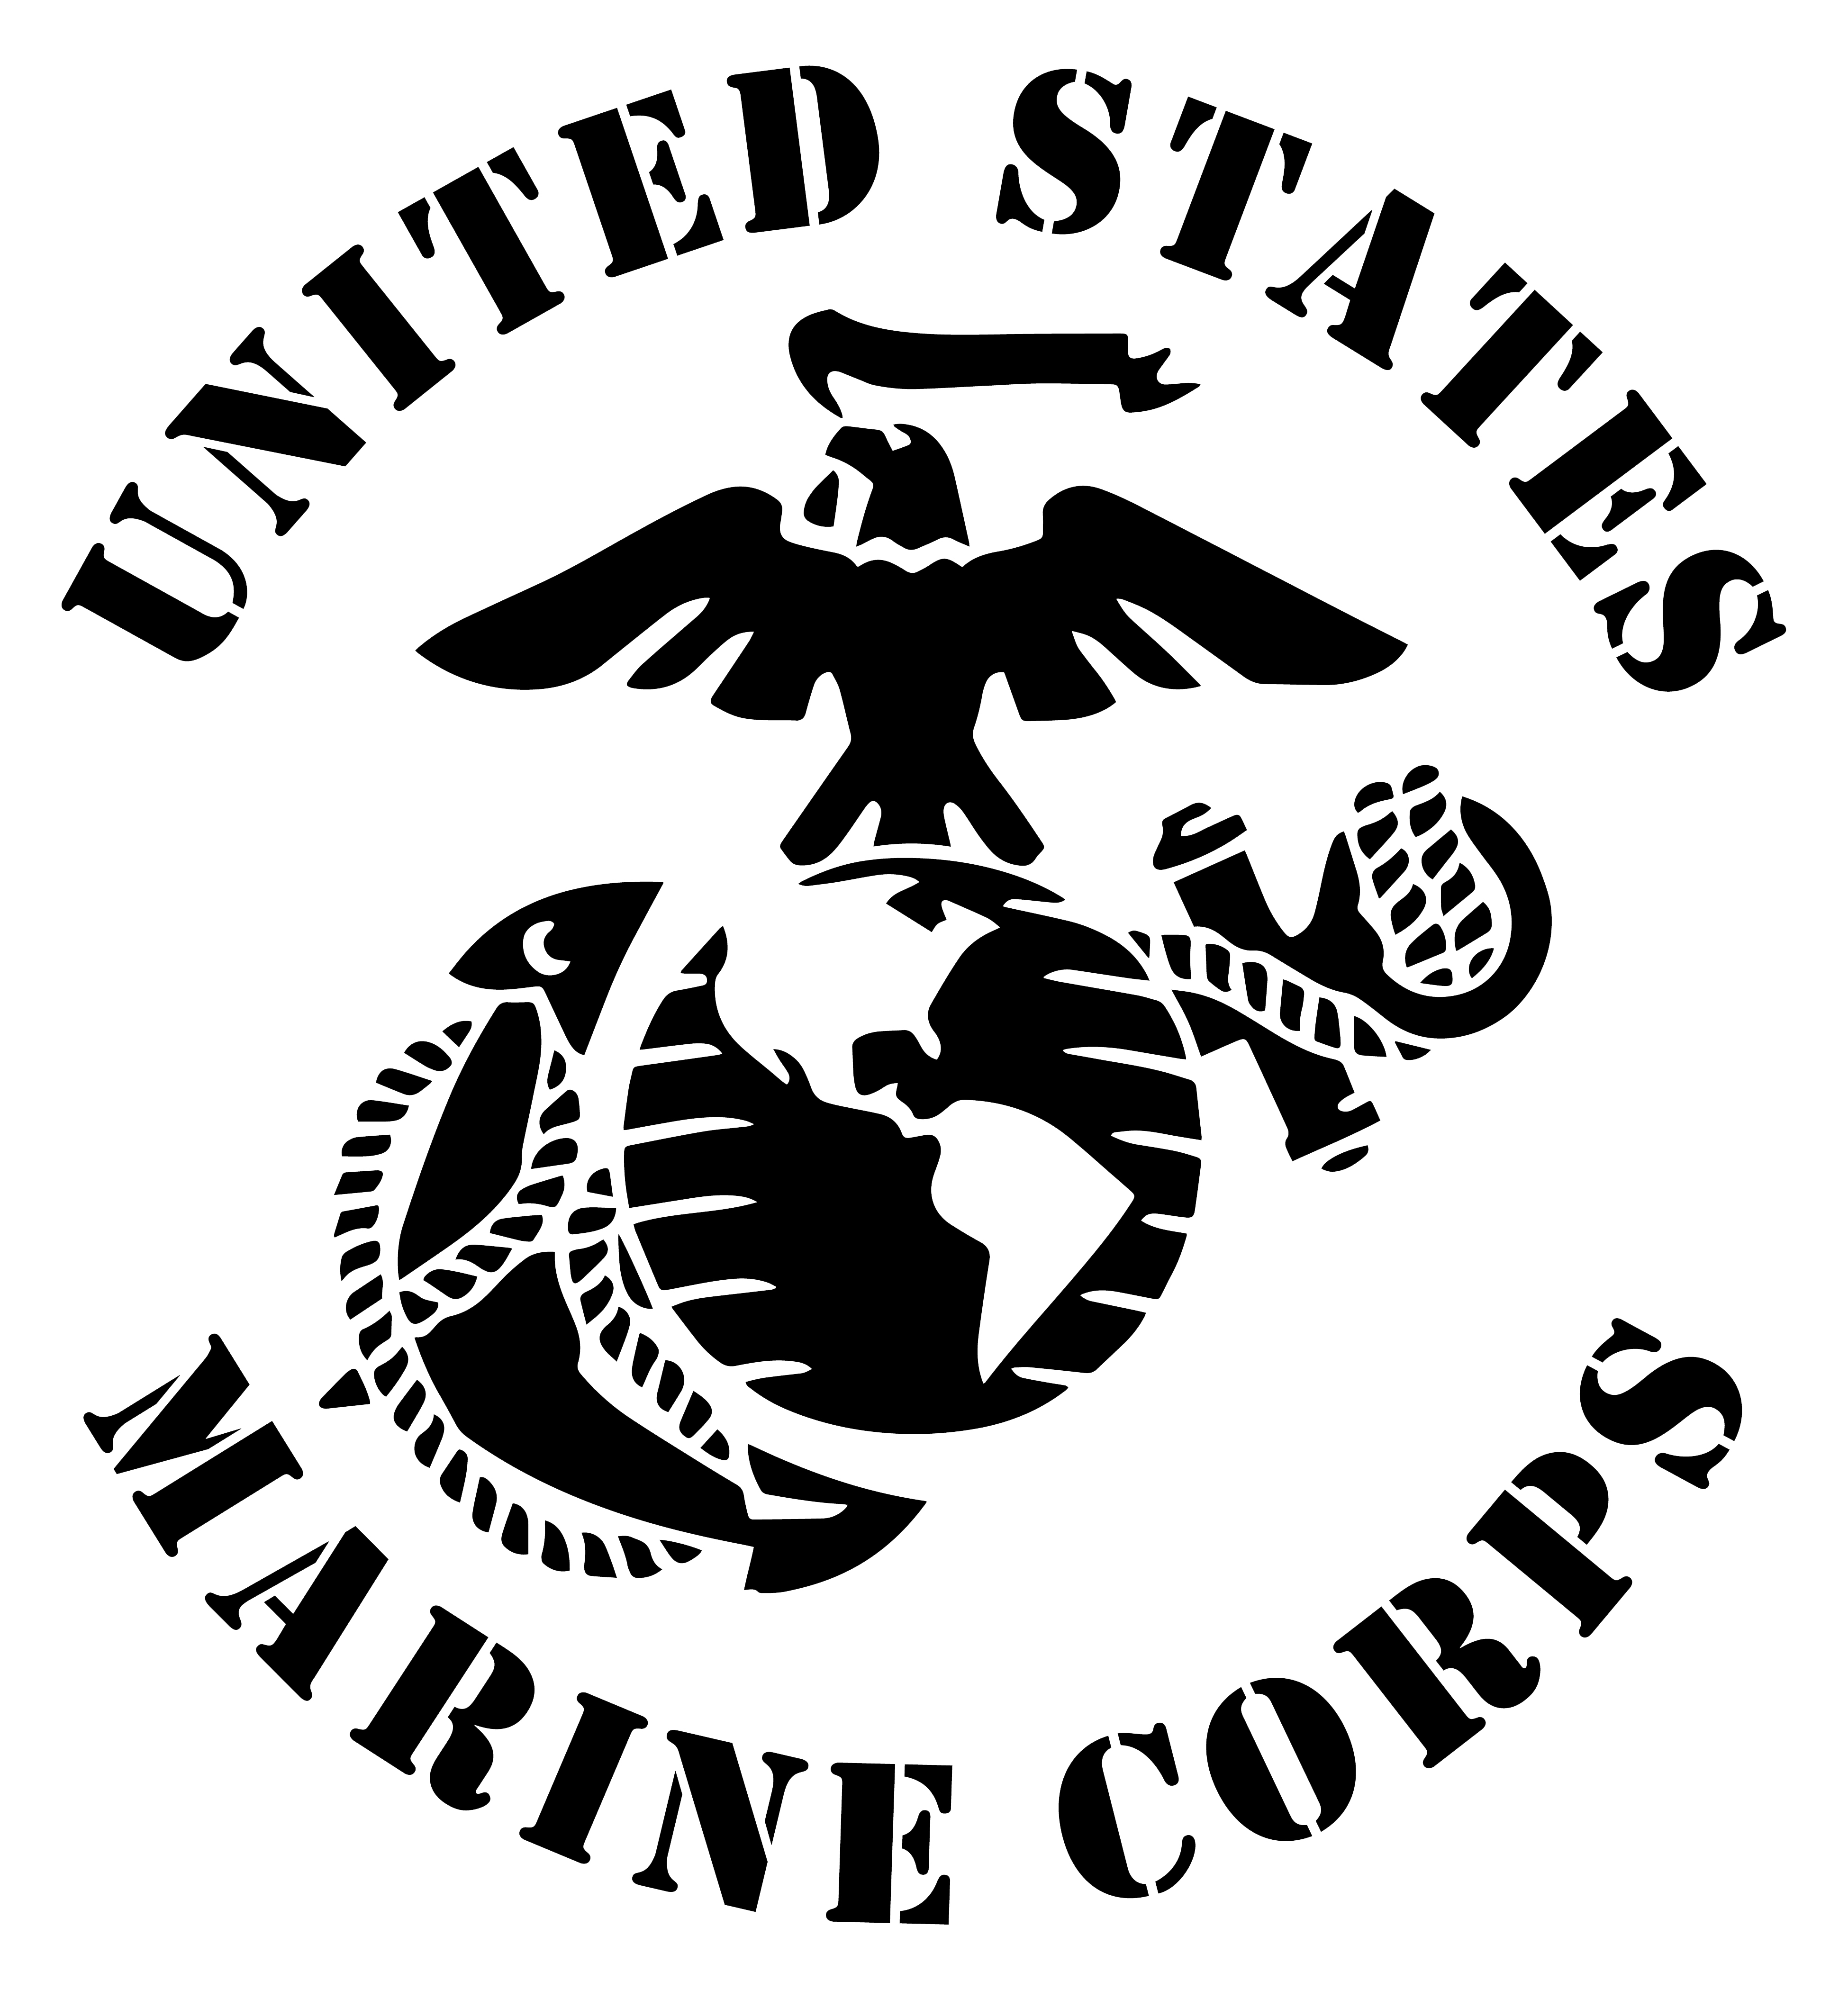 marine symbol drawing at getdrawings com free for personal use rh getdrawings com marine corps logo black and white vector marine corps vector free